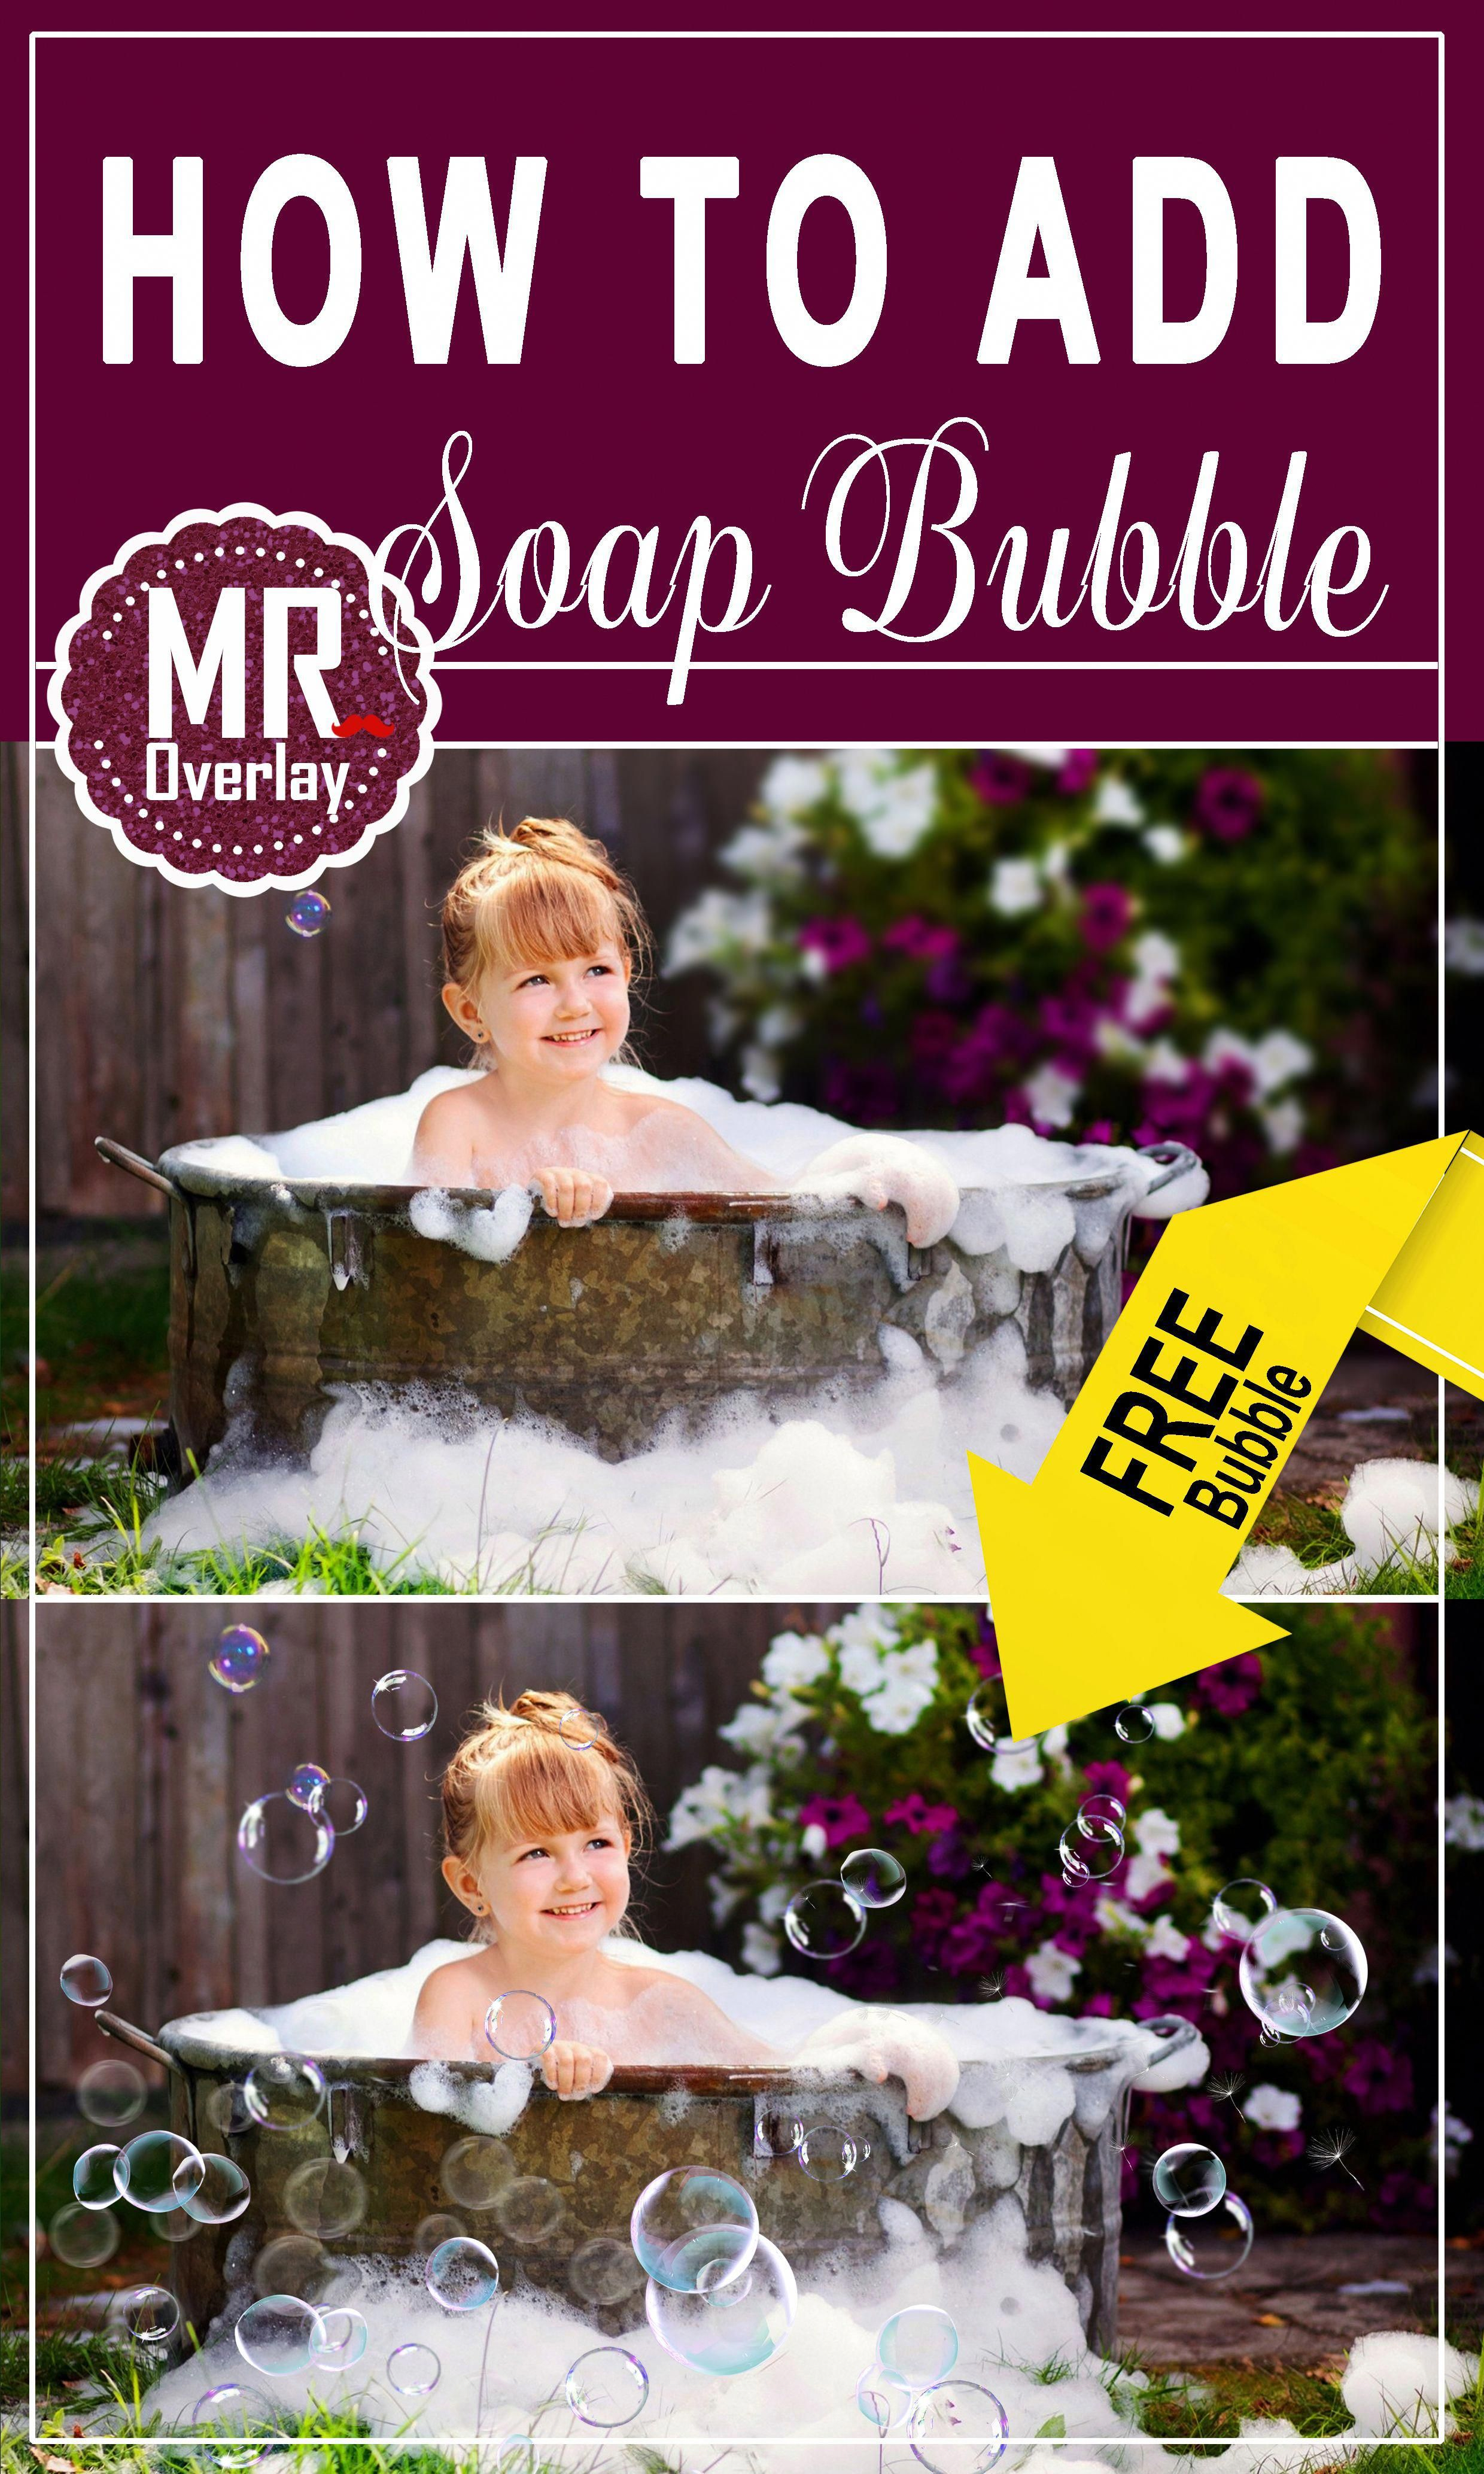 Tips how to add soap bubble to Photo overlays